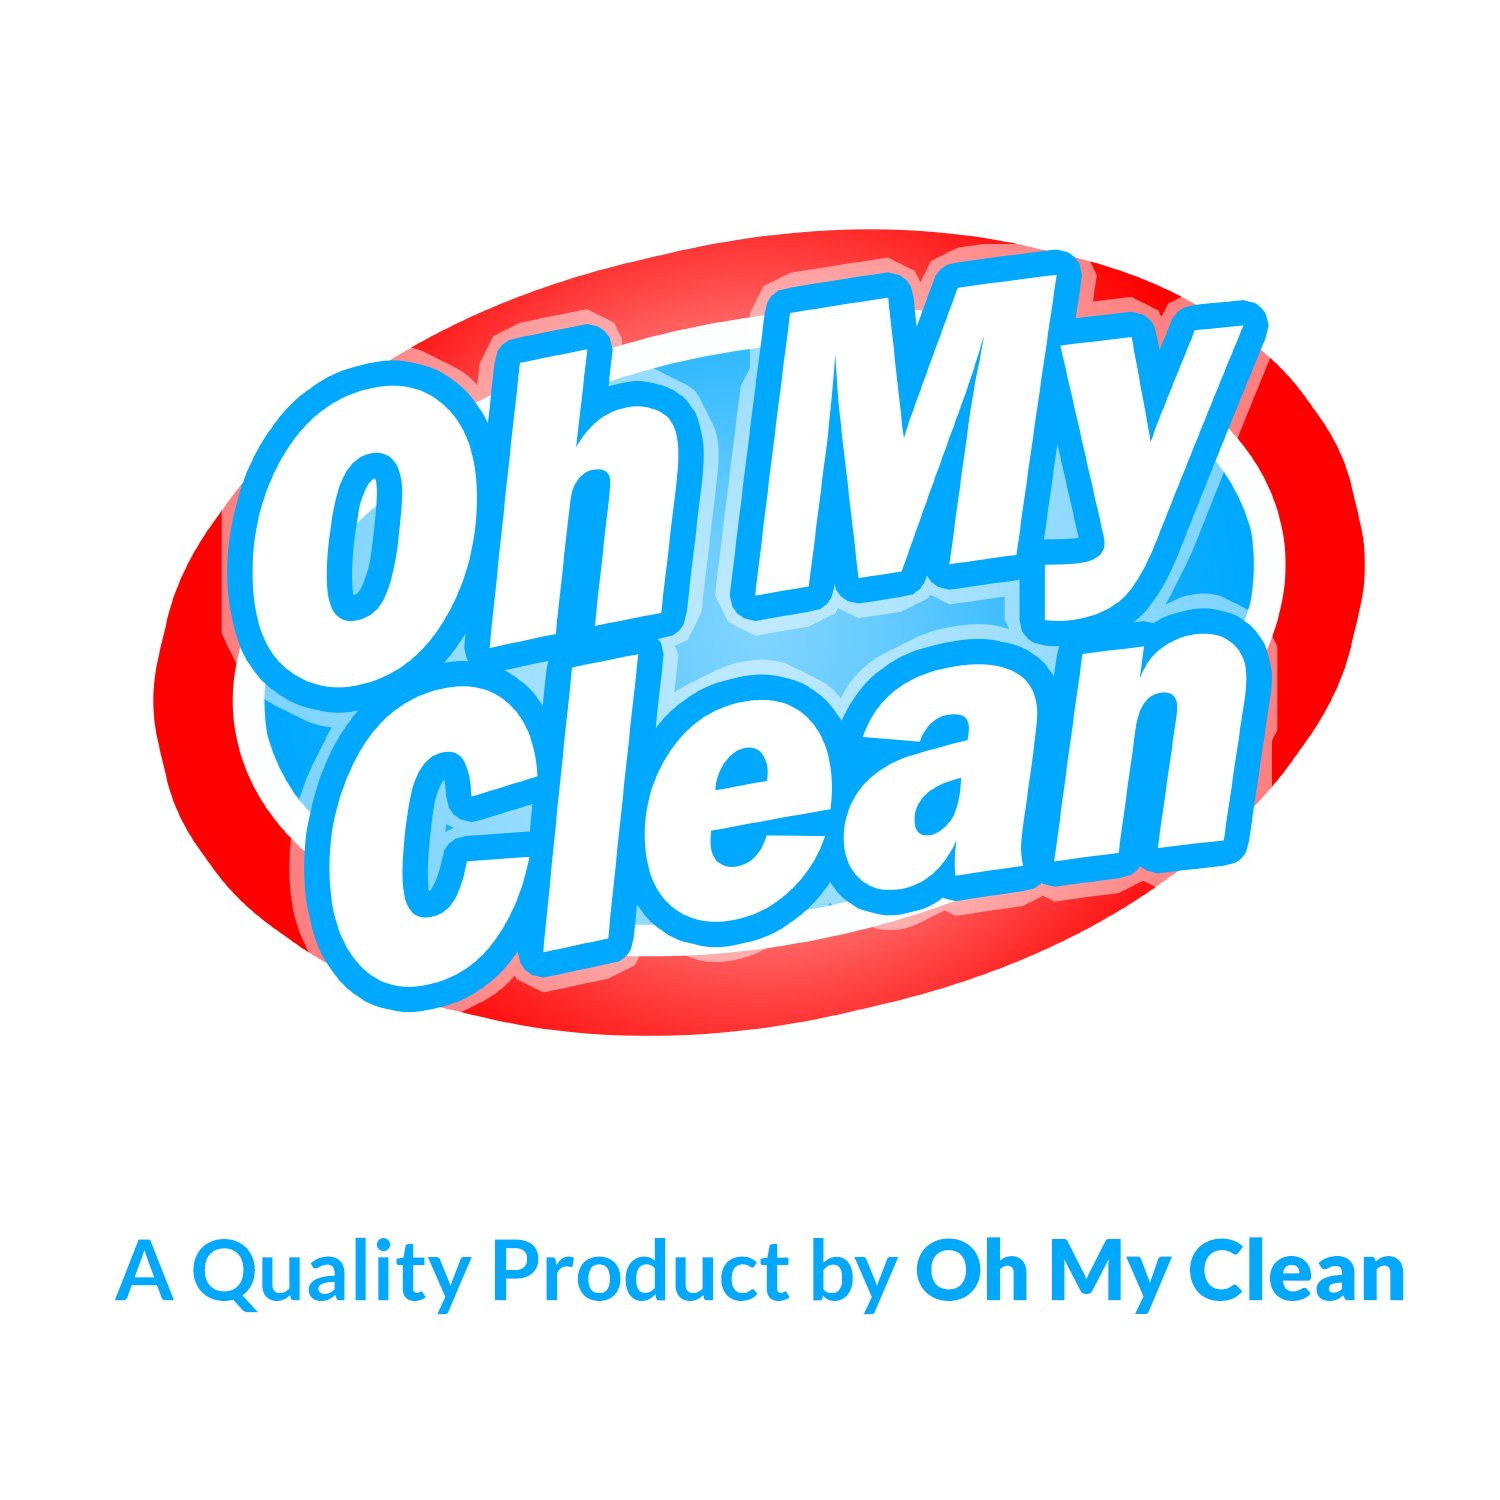 (100 Pack) Extra Large Magic Cleaning Eraser Sponge - 2X Thick, 2X Longer Lasting Melamine Sponges in Bulk - Multi Surface Power Scrubber Foam Pads - Bathtub, Floor, Baseboard, Bathroom, Wall Cleaner by Oh My Clean (Image #8)